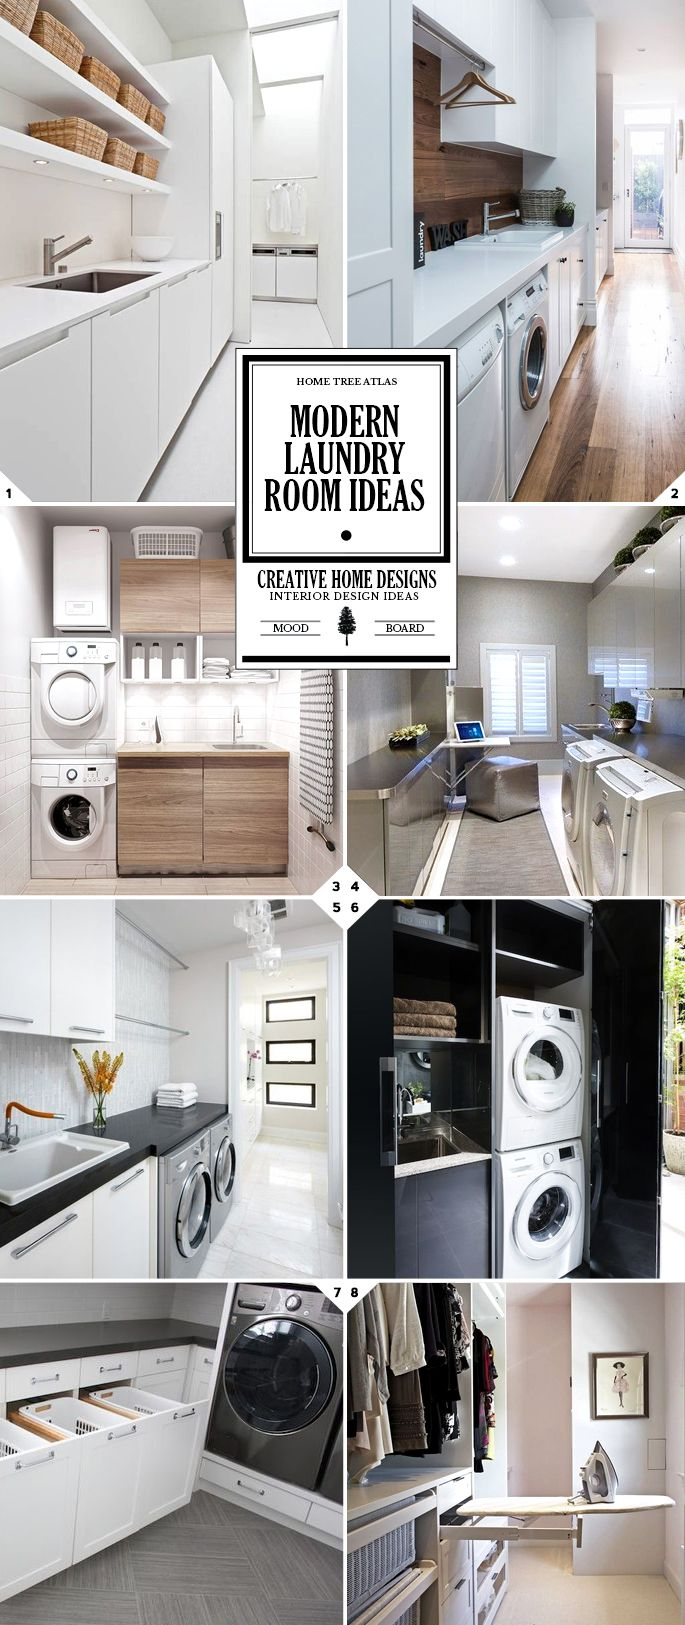 A modern laundry room is going to be a clean and fresh looking space, just like how you want your laundry to come out. This post on modern laundry room ideas and design tips will show you how to design your space to make it look good, and show you how to make the most of […]